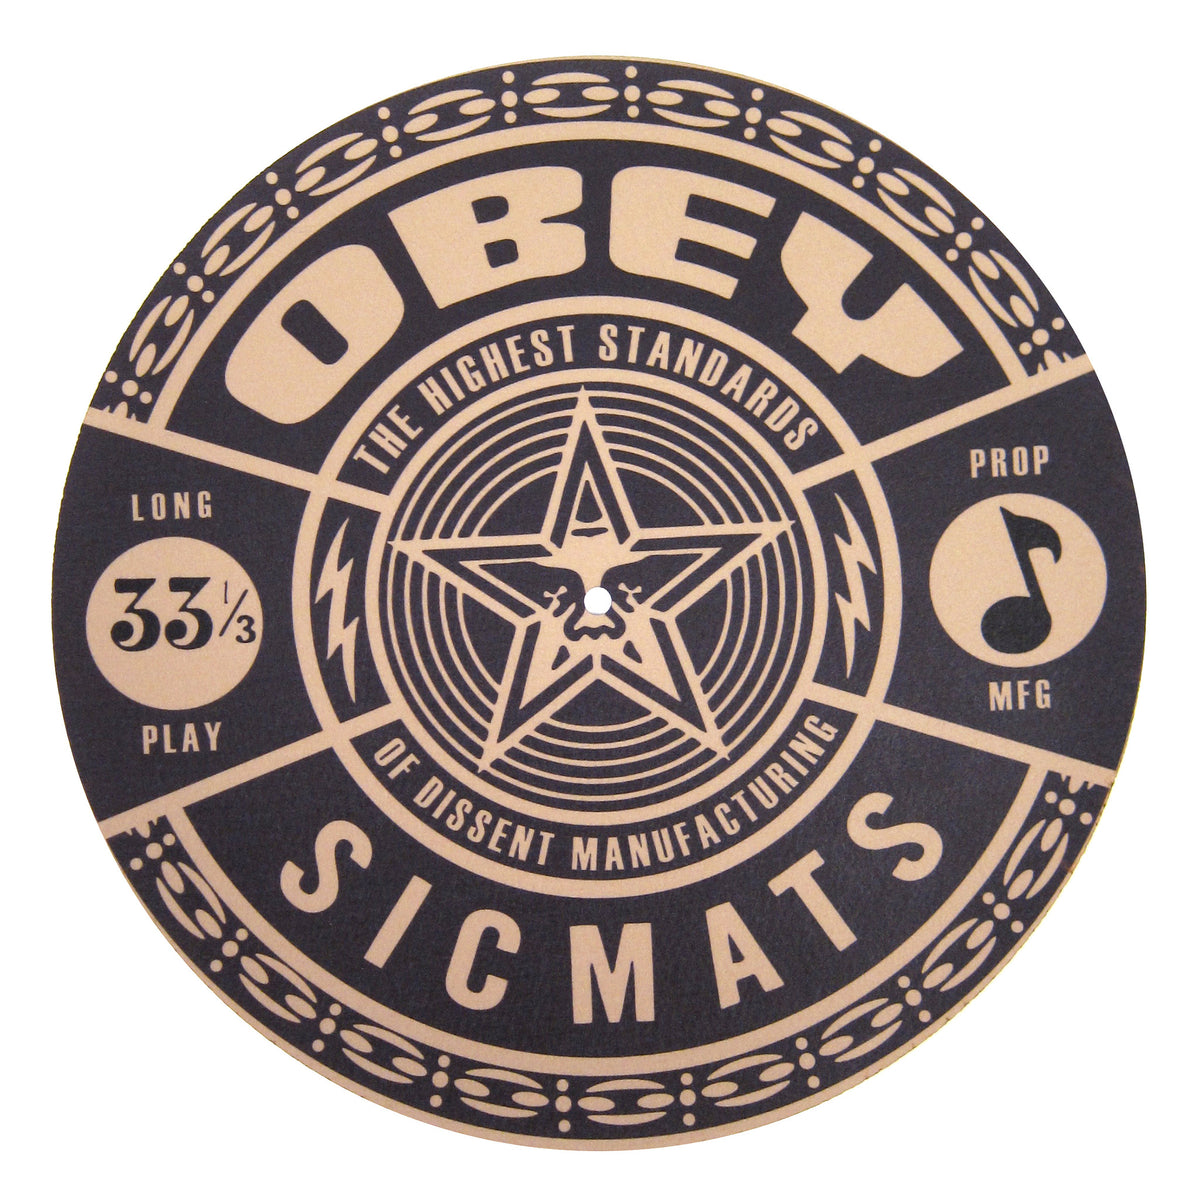 Sicmats: Obey Slipmats (Pair) - Black / Gold